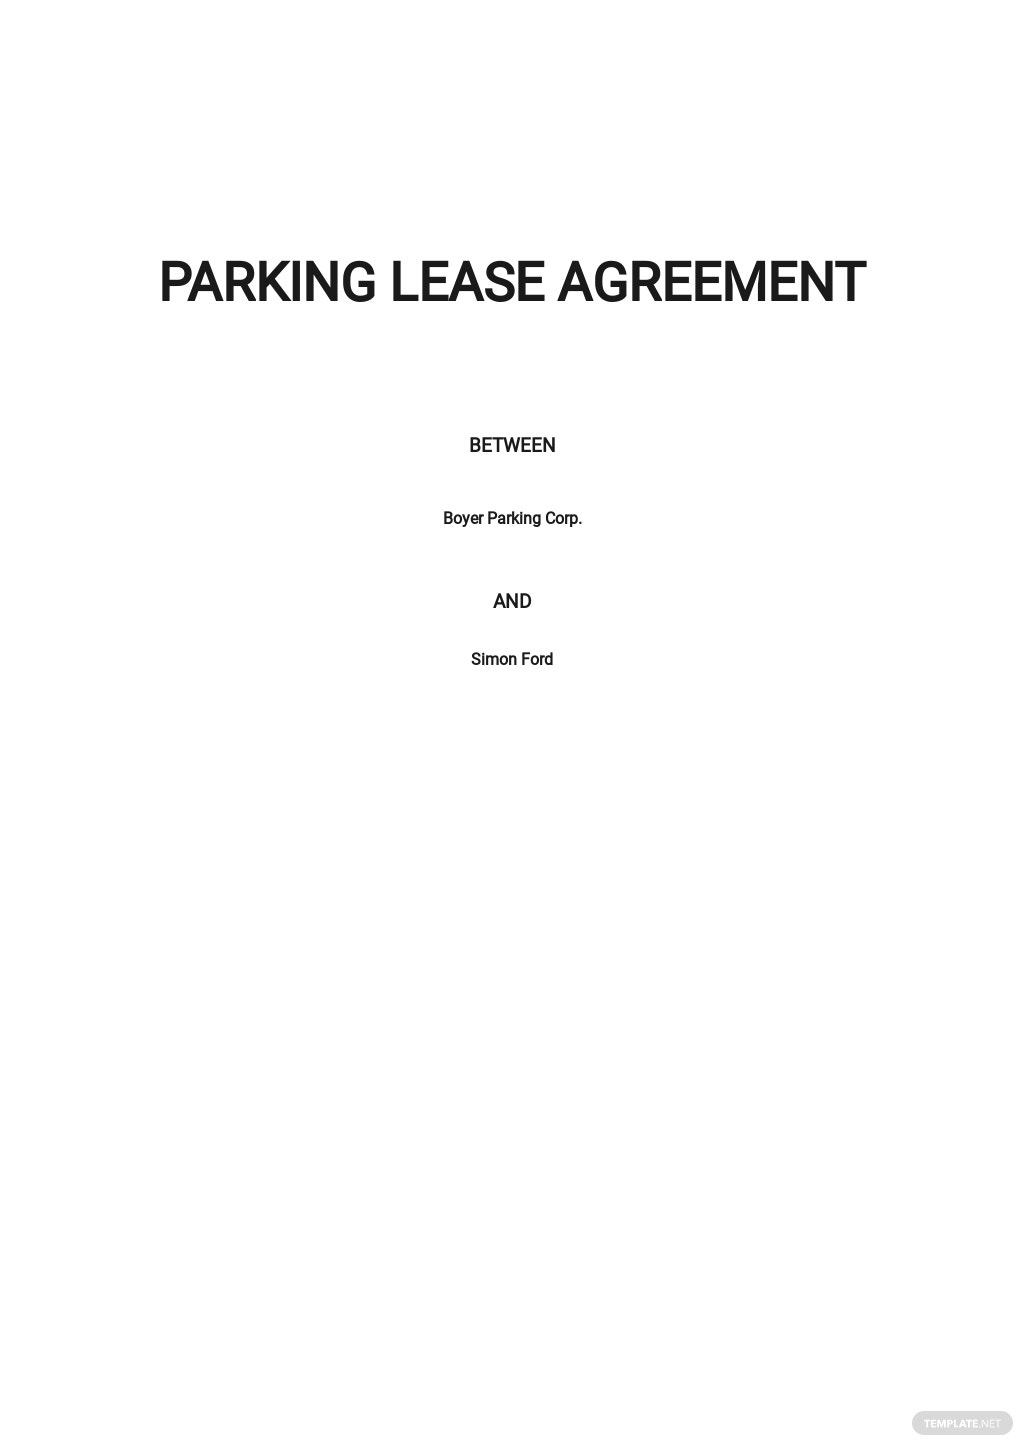 Parking Lease Agreement Template.jpe